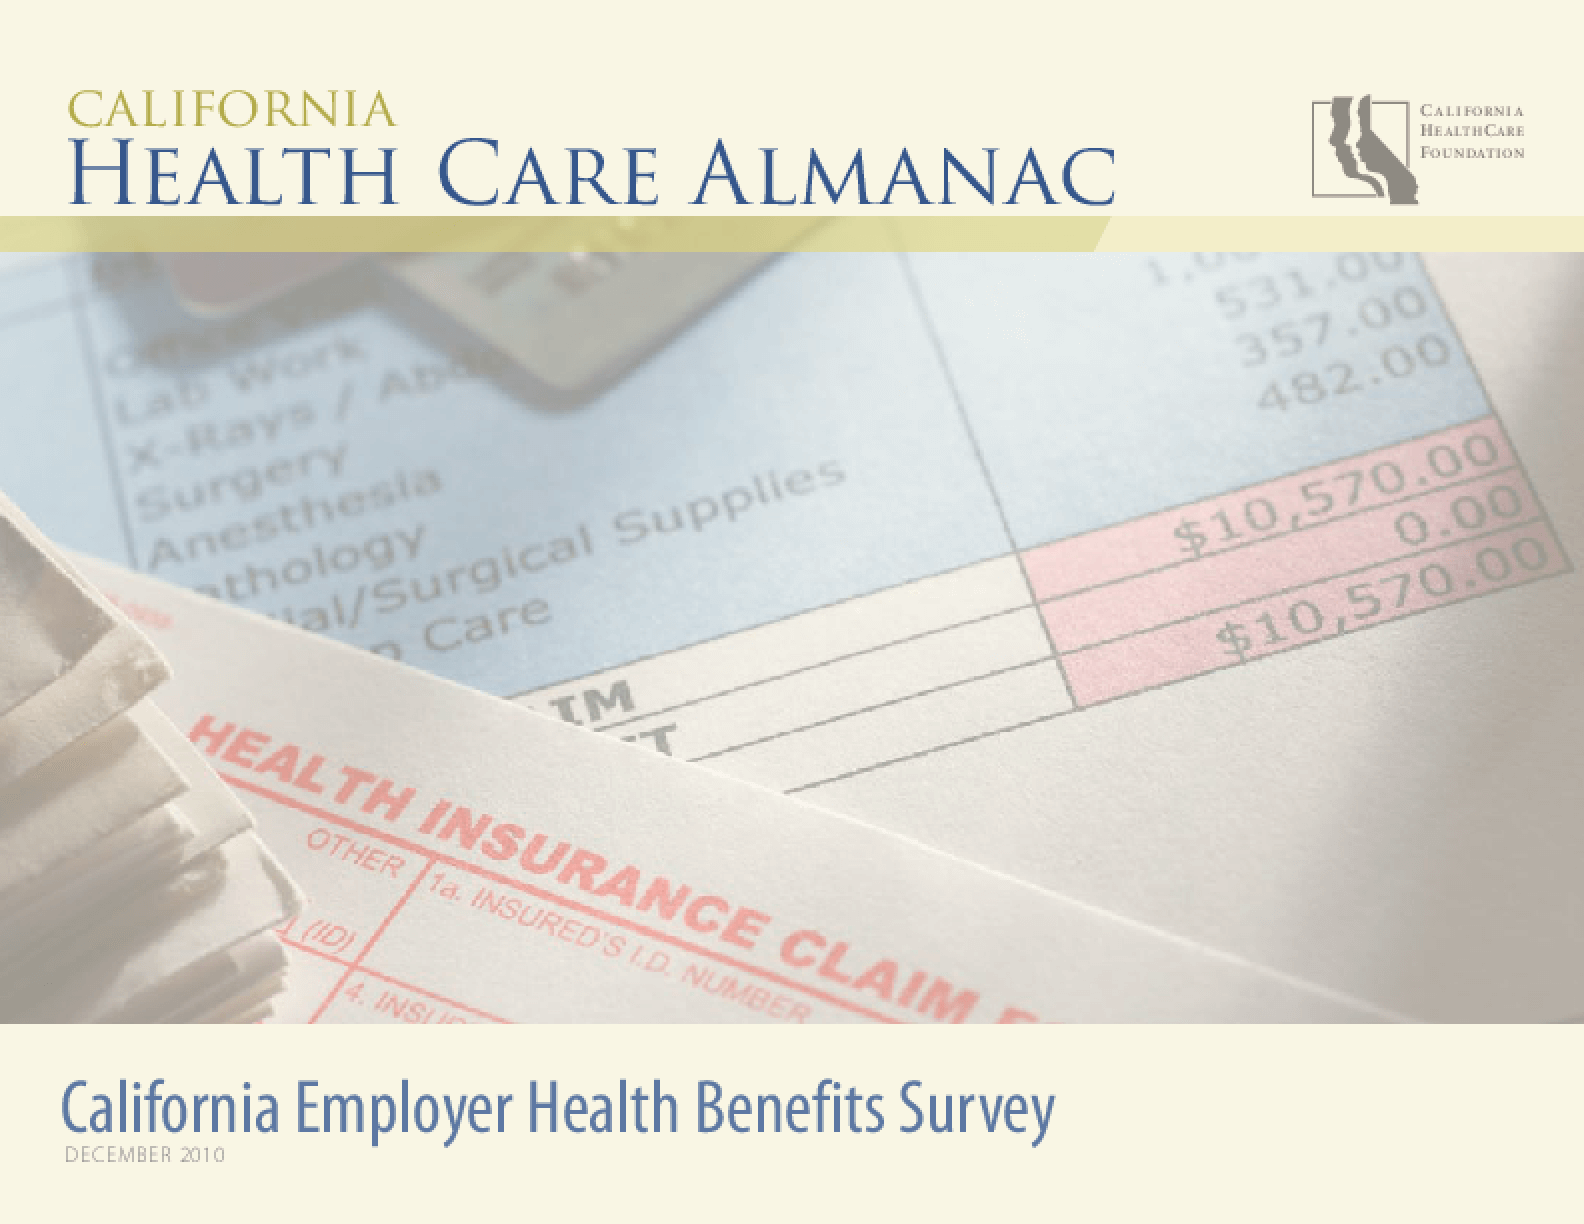 California Employer Health Benefits Survey